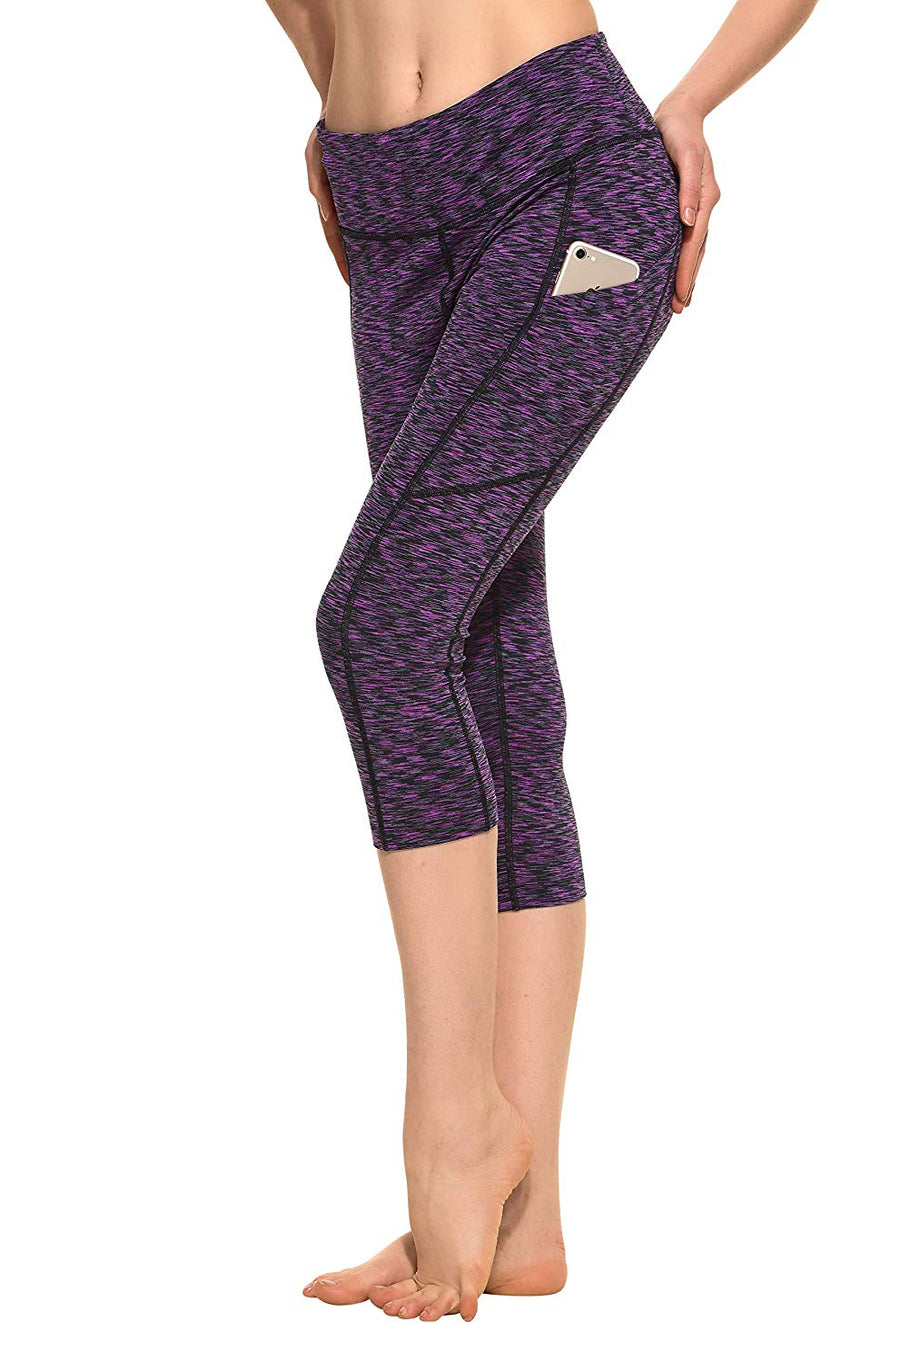 CYZ Women's Space-Dyed Tummy Control Yoga Workout Leggings with Cell Phone Pocket